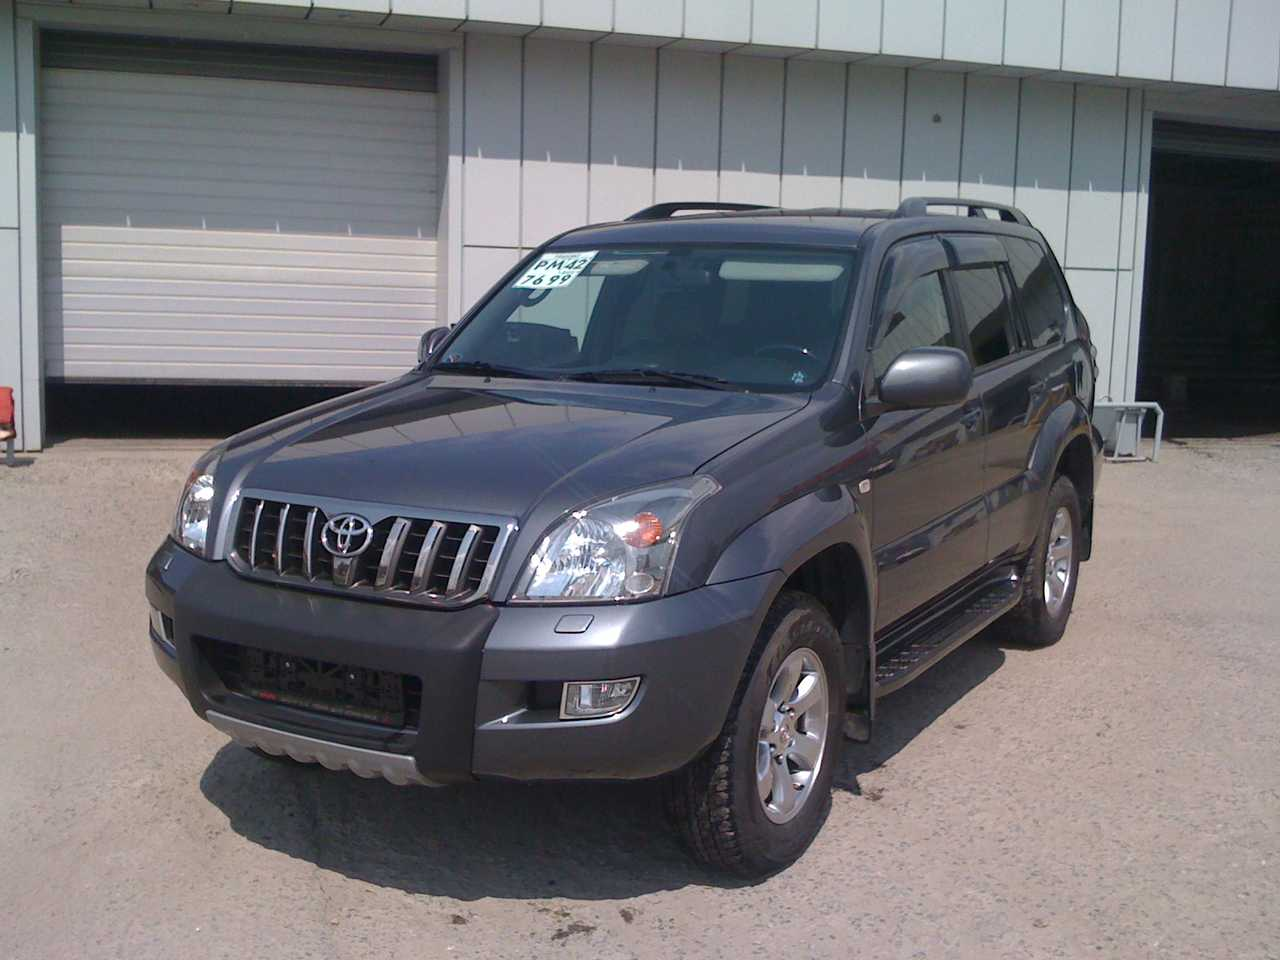 2008 Toyota Land Cruiser Prado Photos 4 0 Gasoline